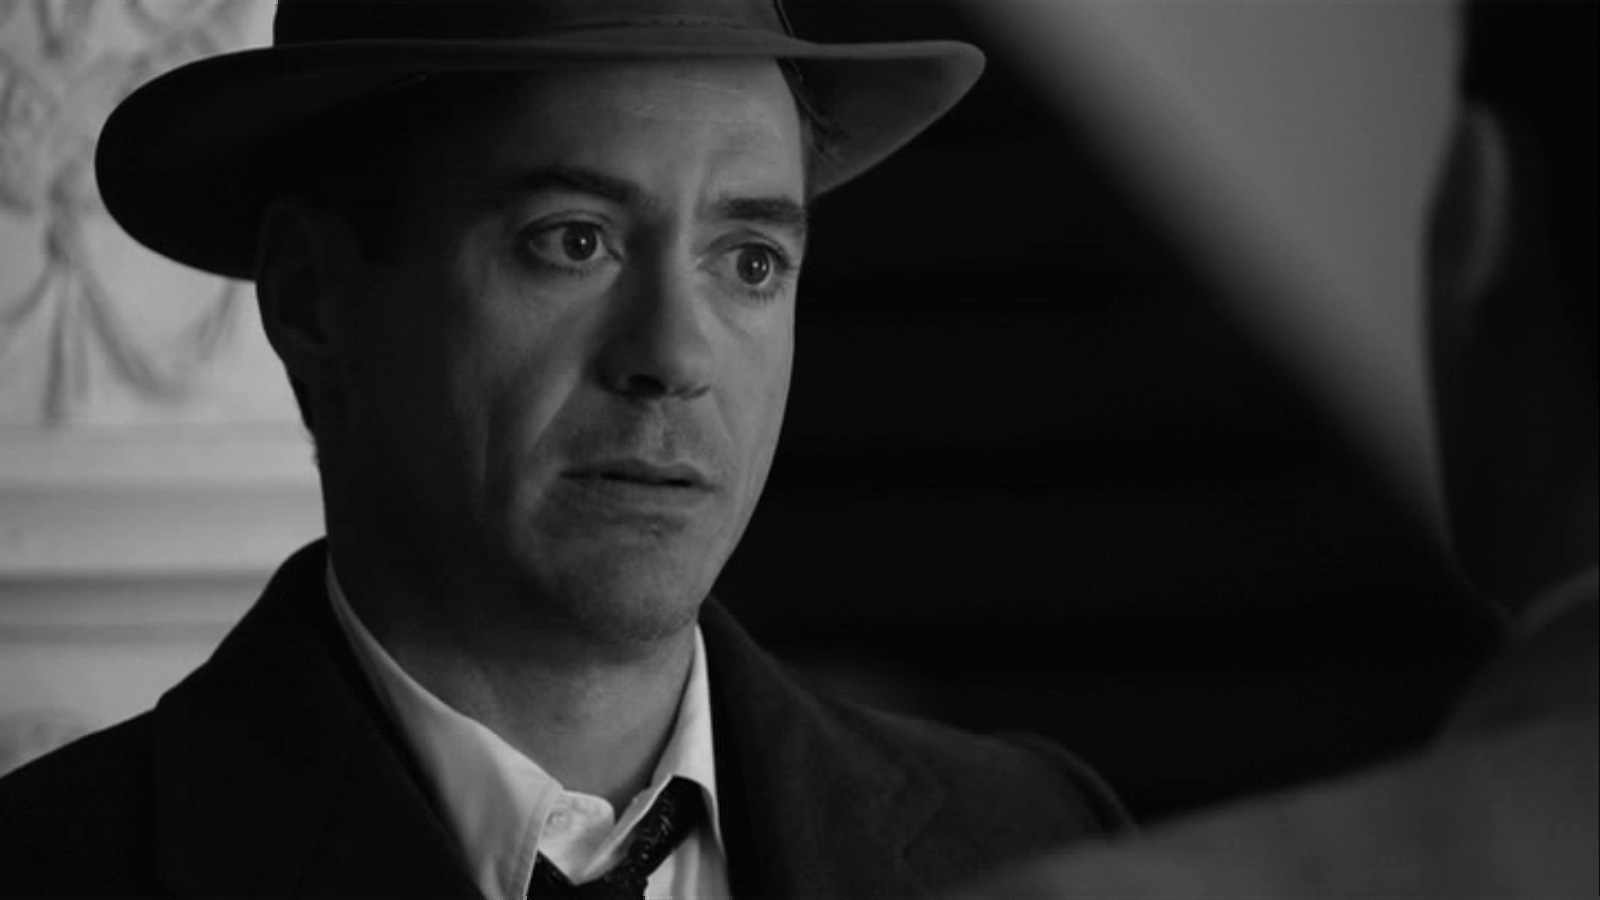 movie robert downey jr luck night cool background wide fanpop hdblackwallpaper hat club screencaps george